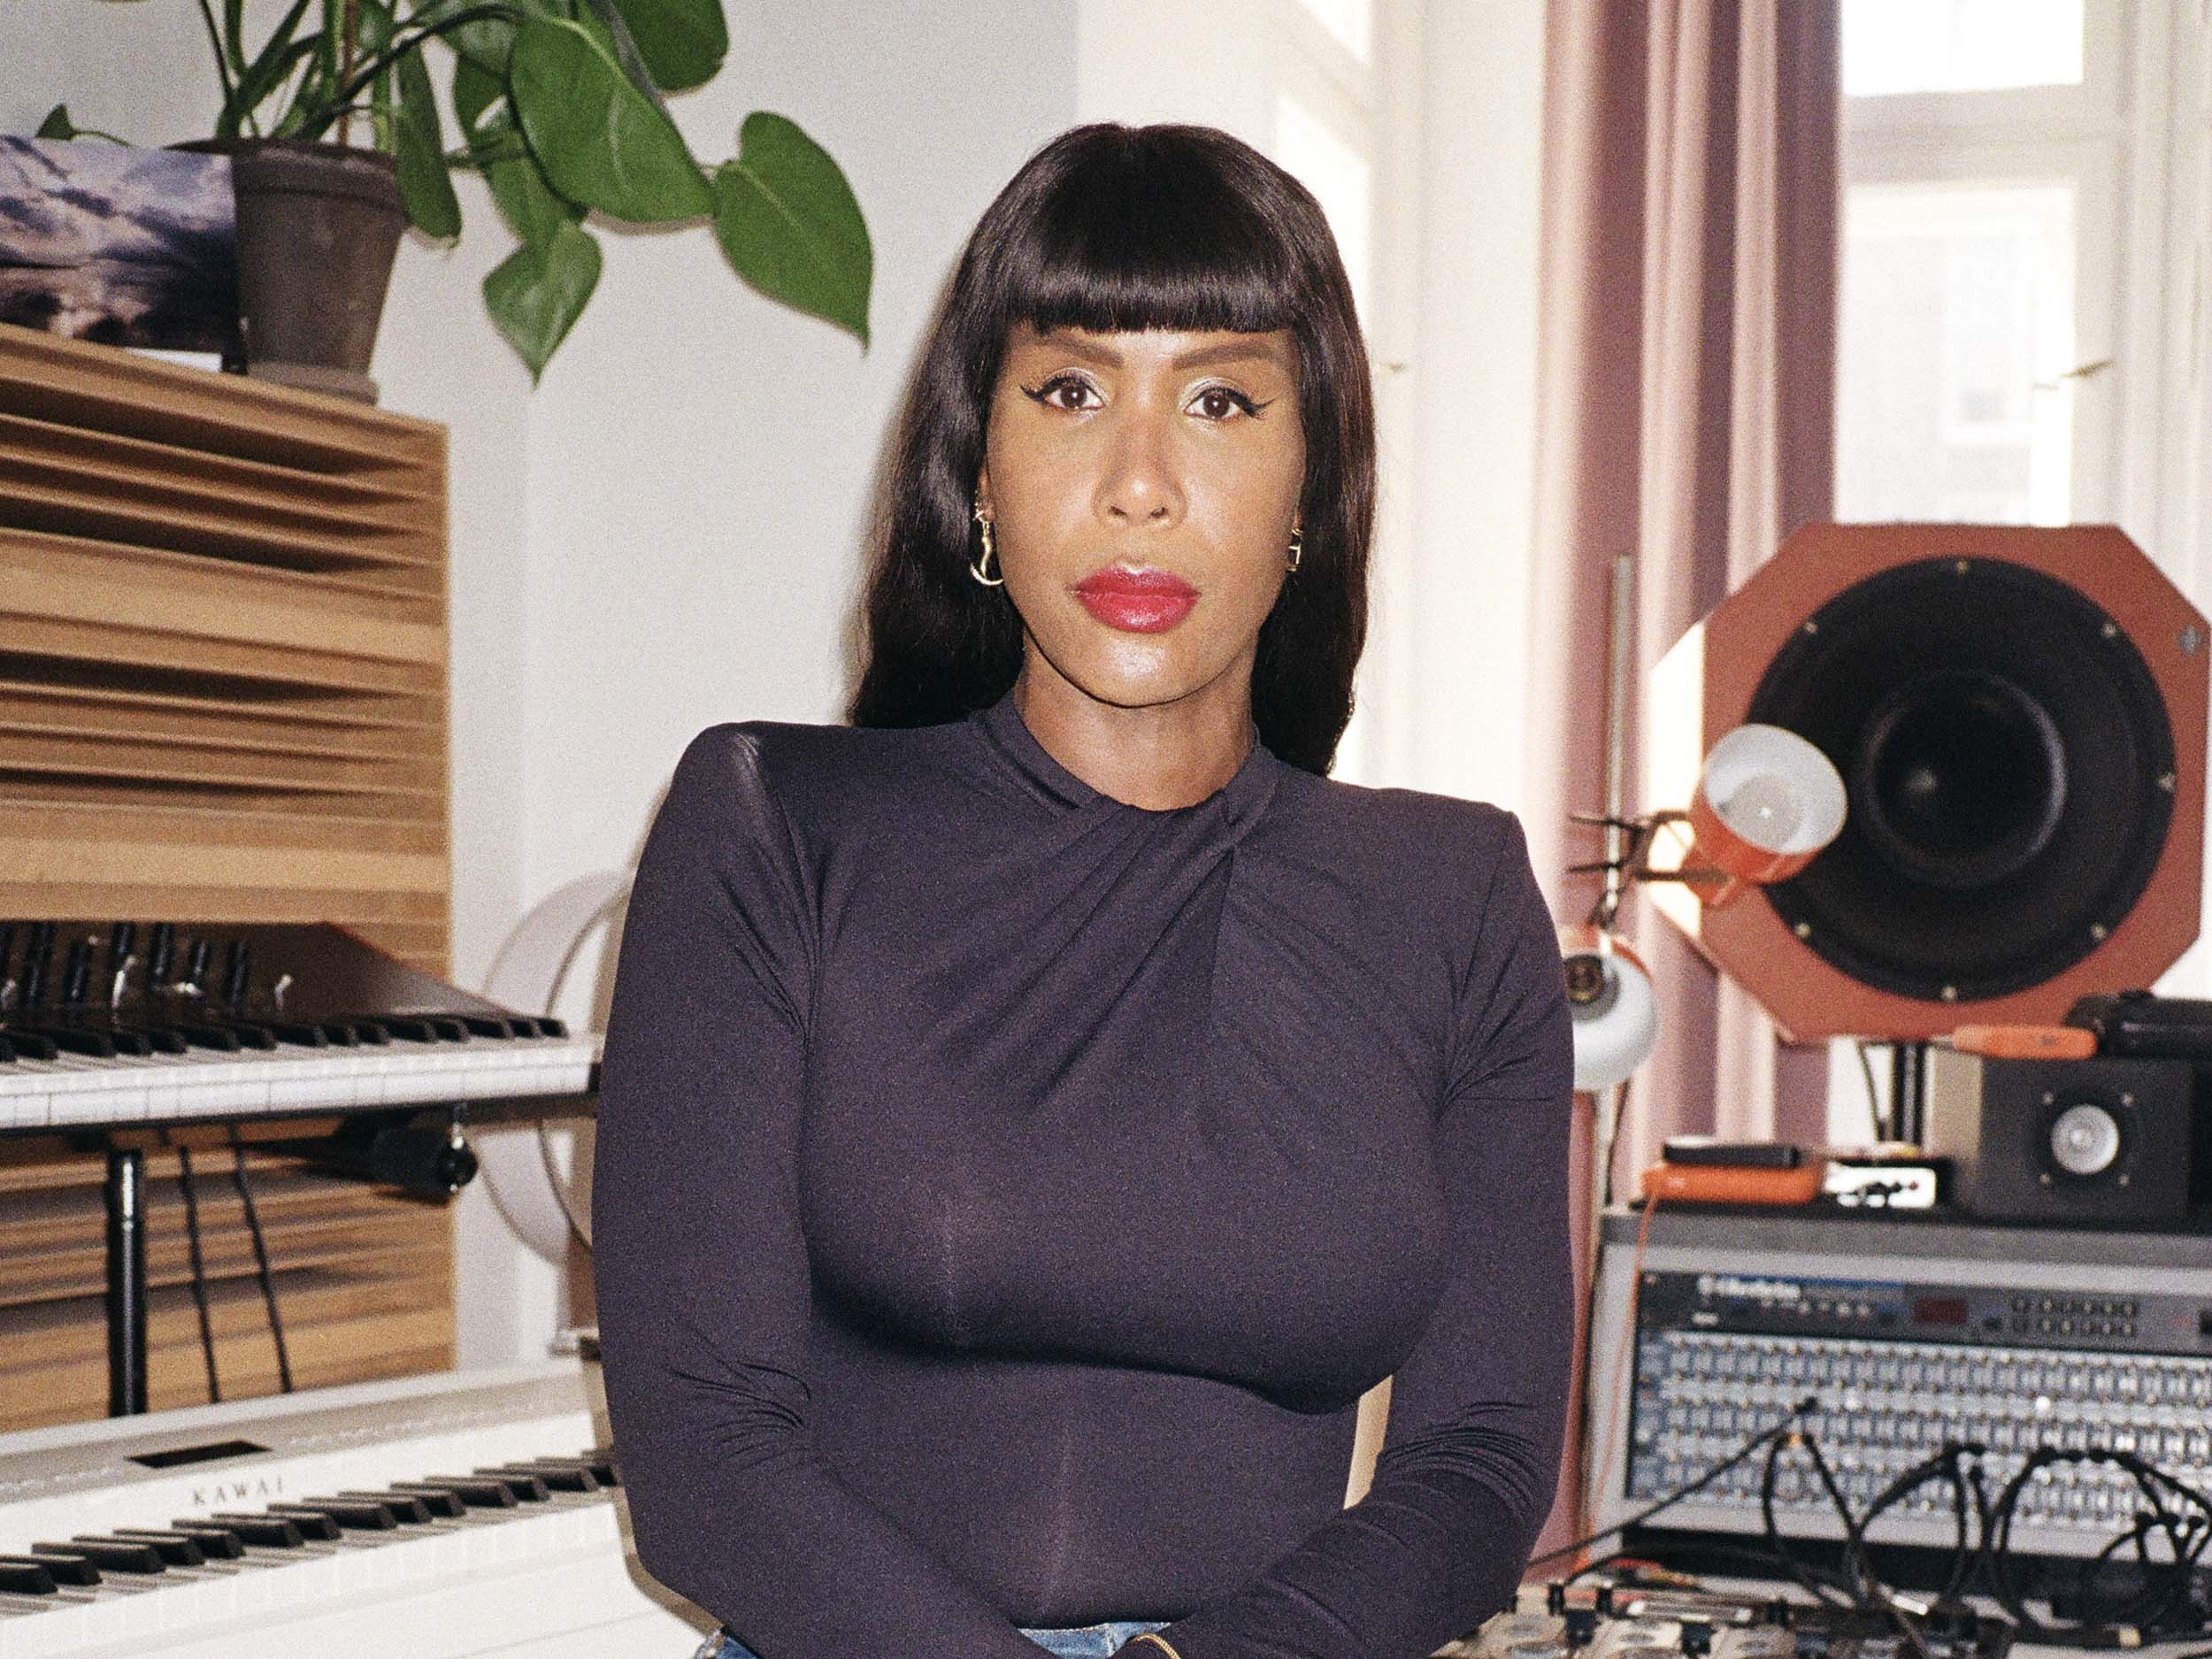 Honey Dijon, Juliana Huxtable, and Nomi Ruiz affirm the sacred, shamanistic pleasures of sex and sound